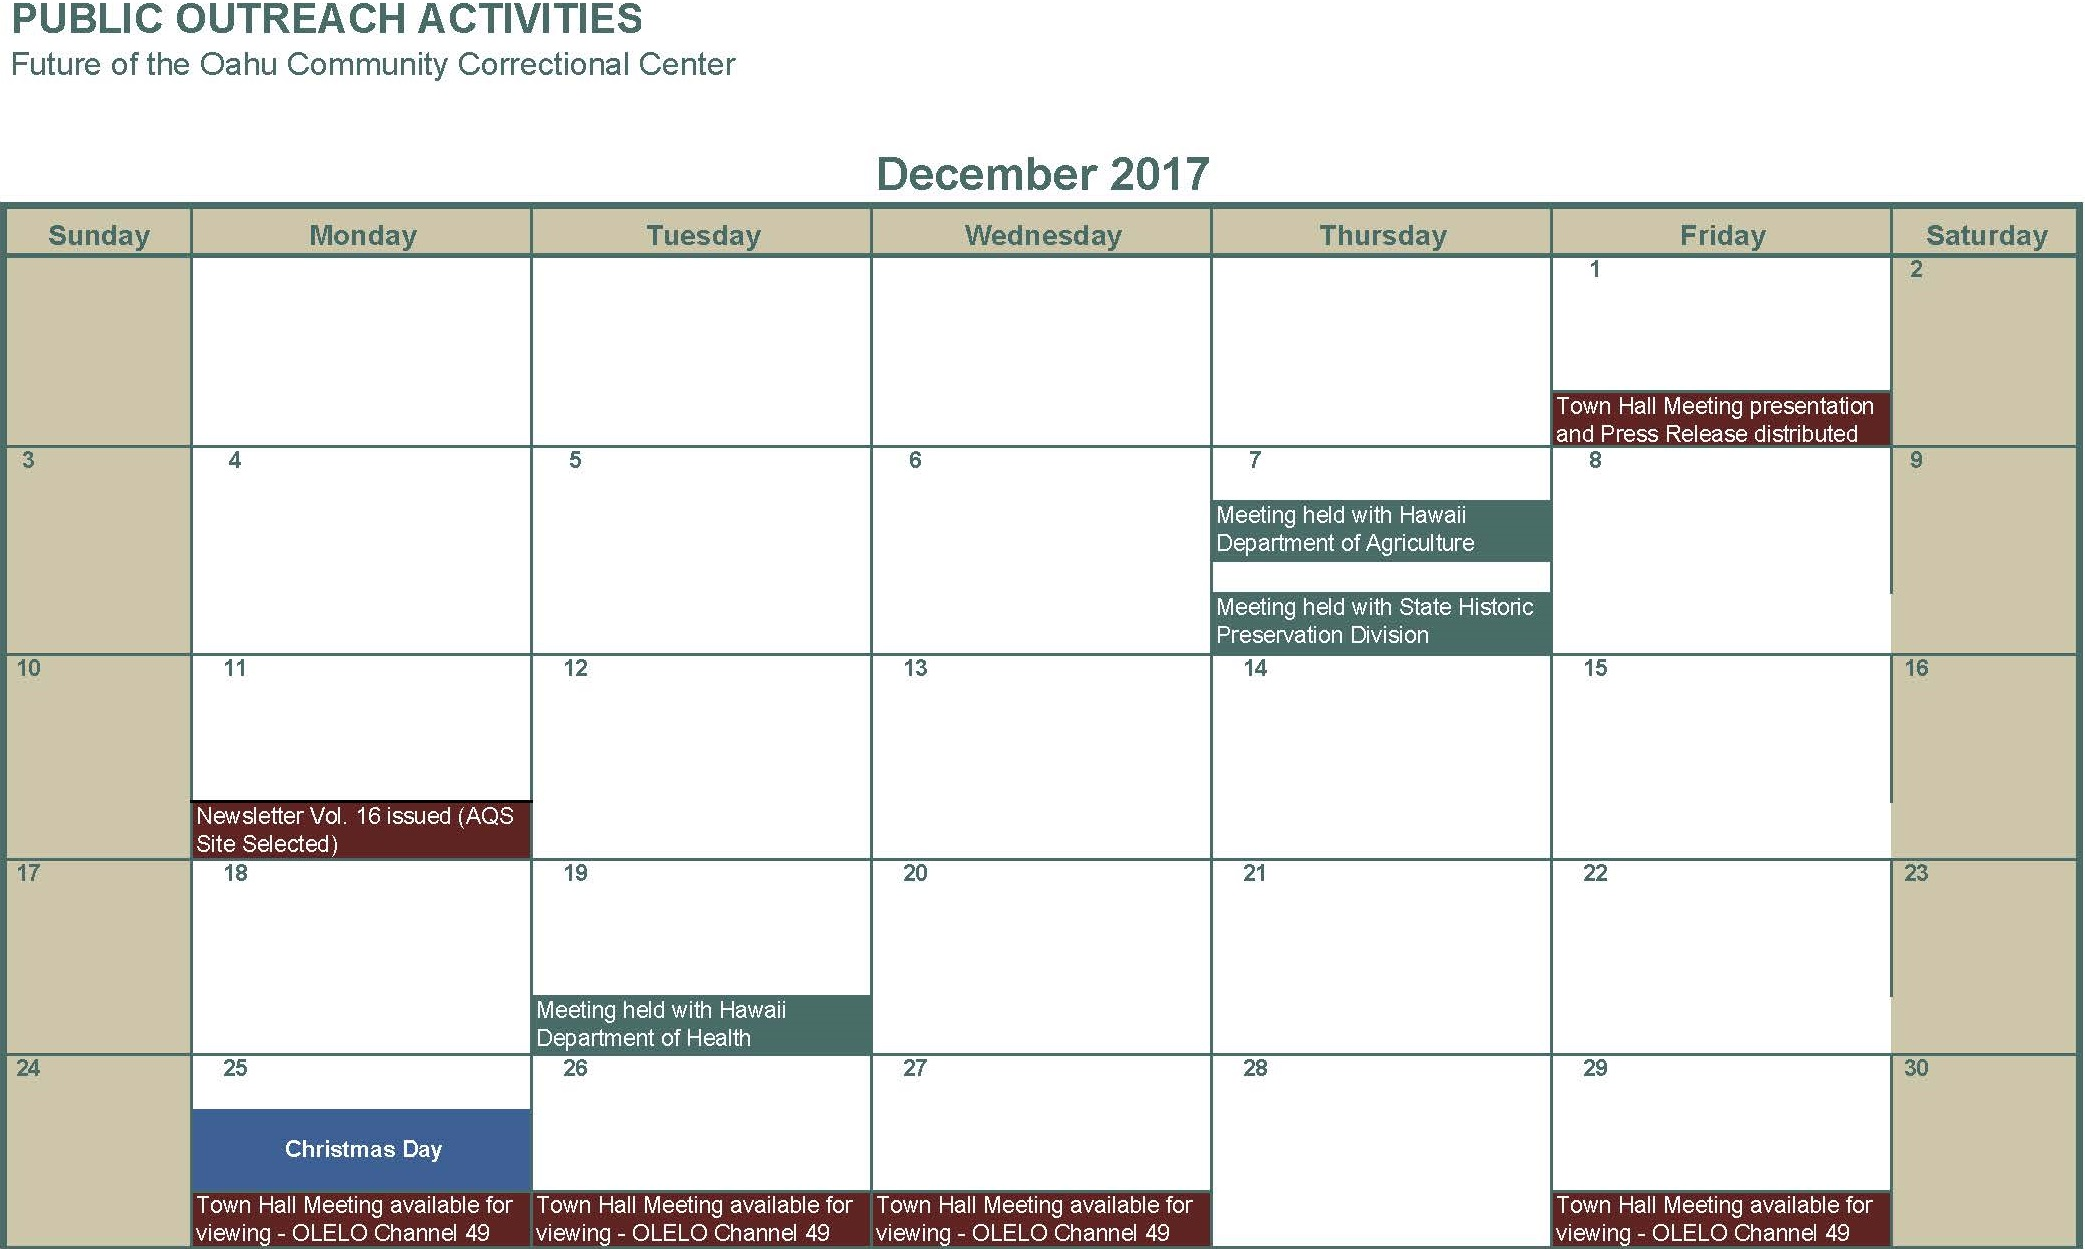 December 2017 Meetings held with Department of Agriculture Historic Preservation Divison and Department of Health